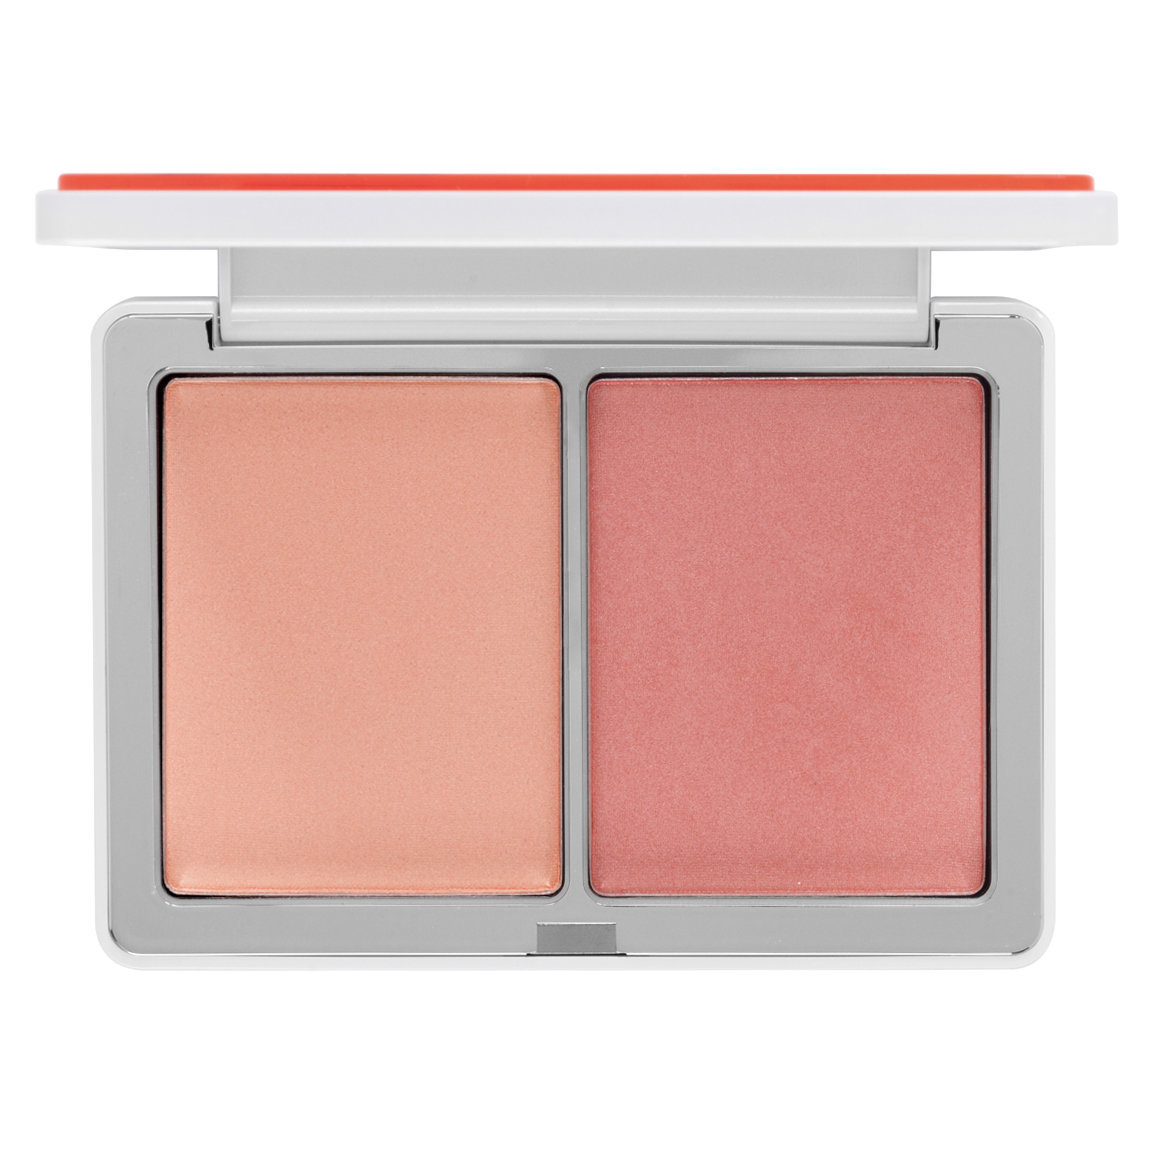 Natasha Denona Blush Duo 10 - Sheer Peachy Nude product swatch.